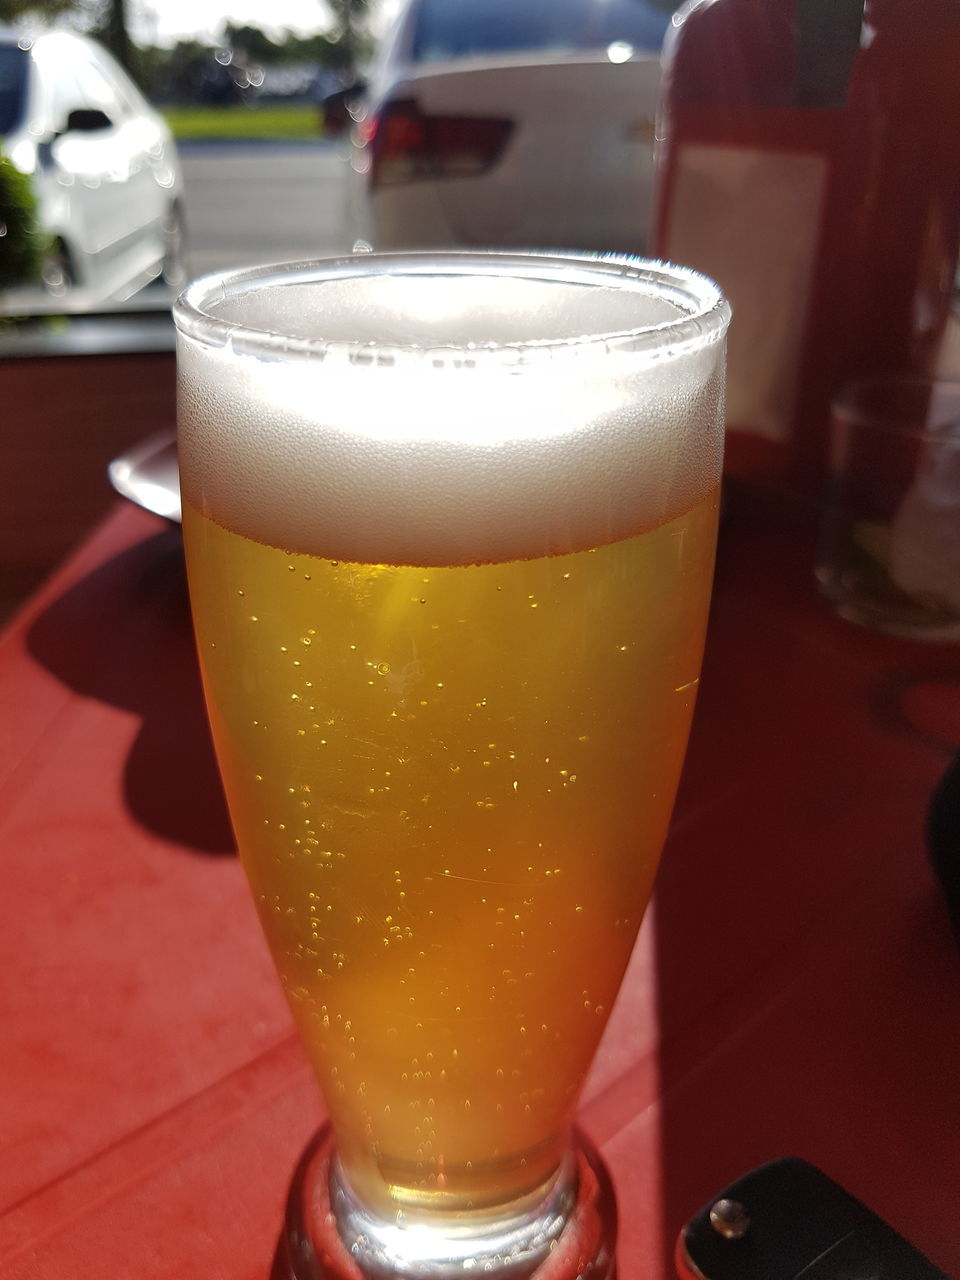 drink, beer glass, beer - alcohol, frothy drink, refreshment, alcohol, drinking glass, beer, close-up, food and drink, table, no people, freshness, indoors, day